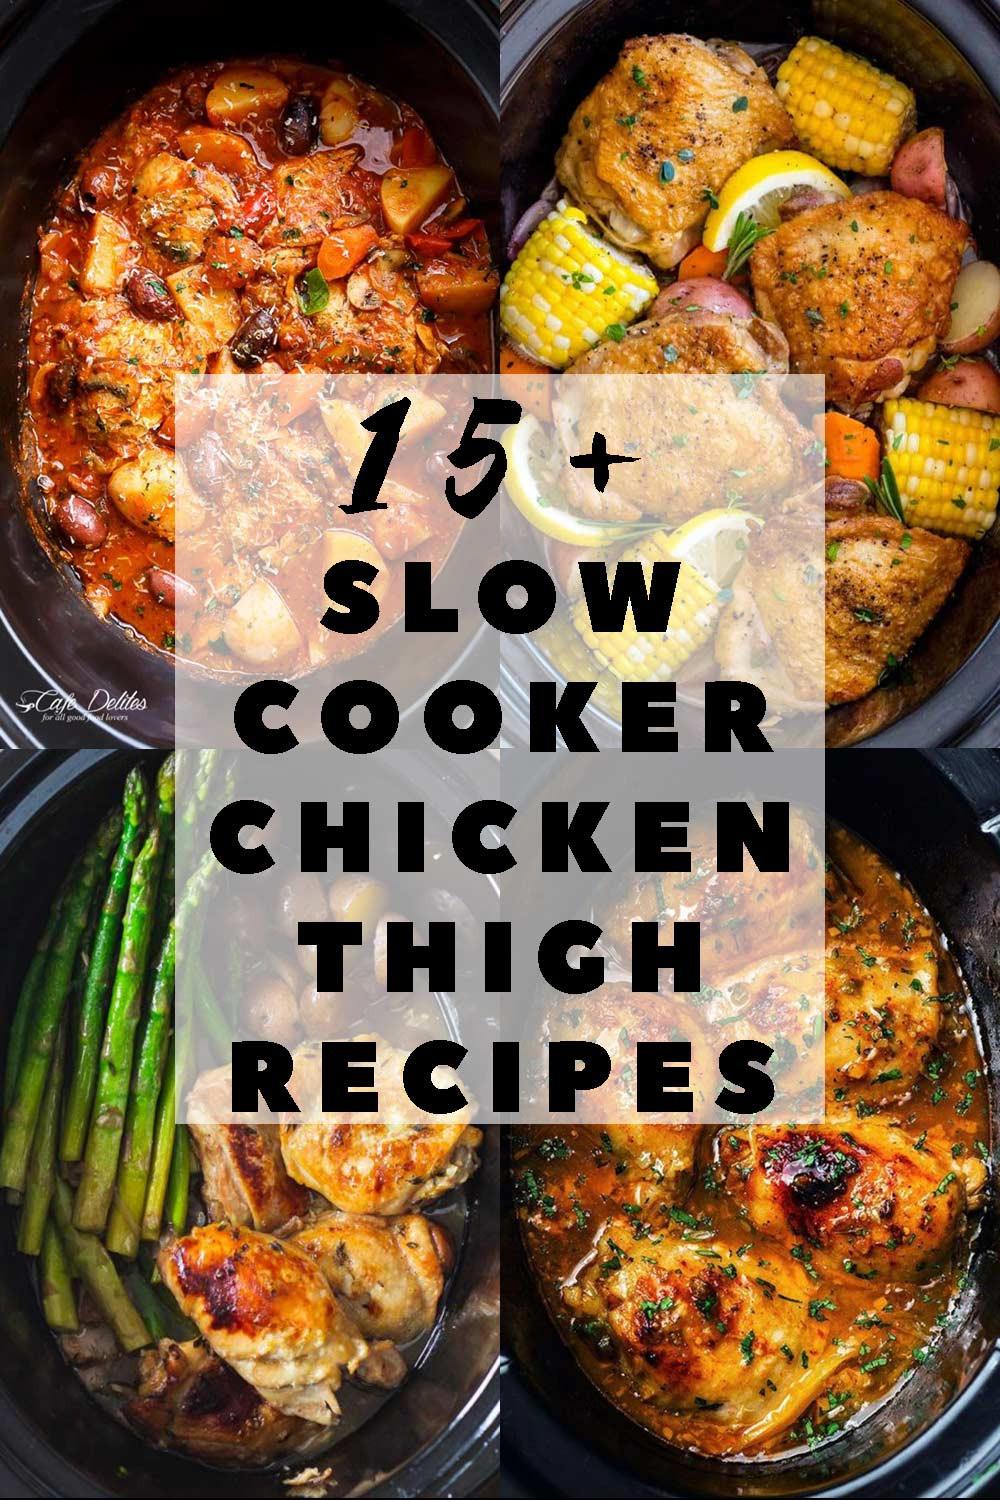 Slow Cooker Chicken Thighs  The 15 Best Slow Cooker Chicken Thigh Recipes Green